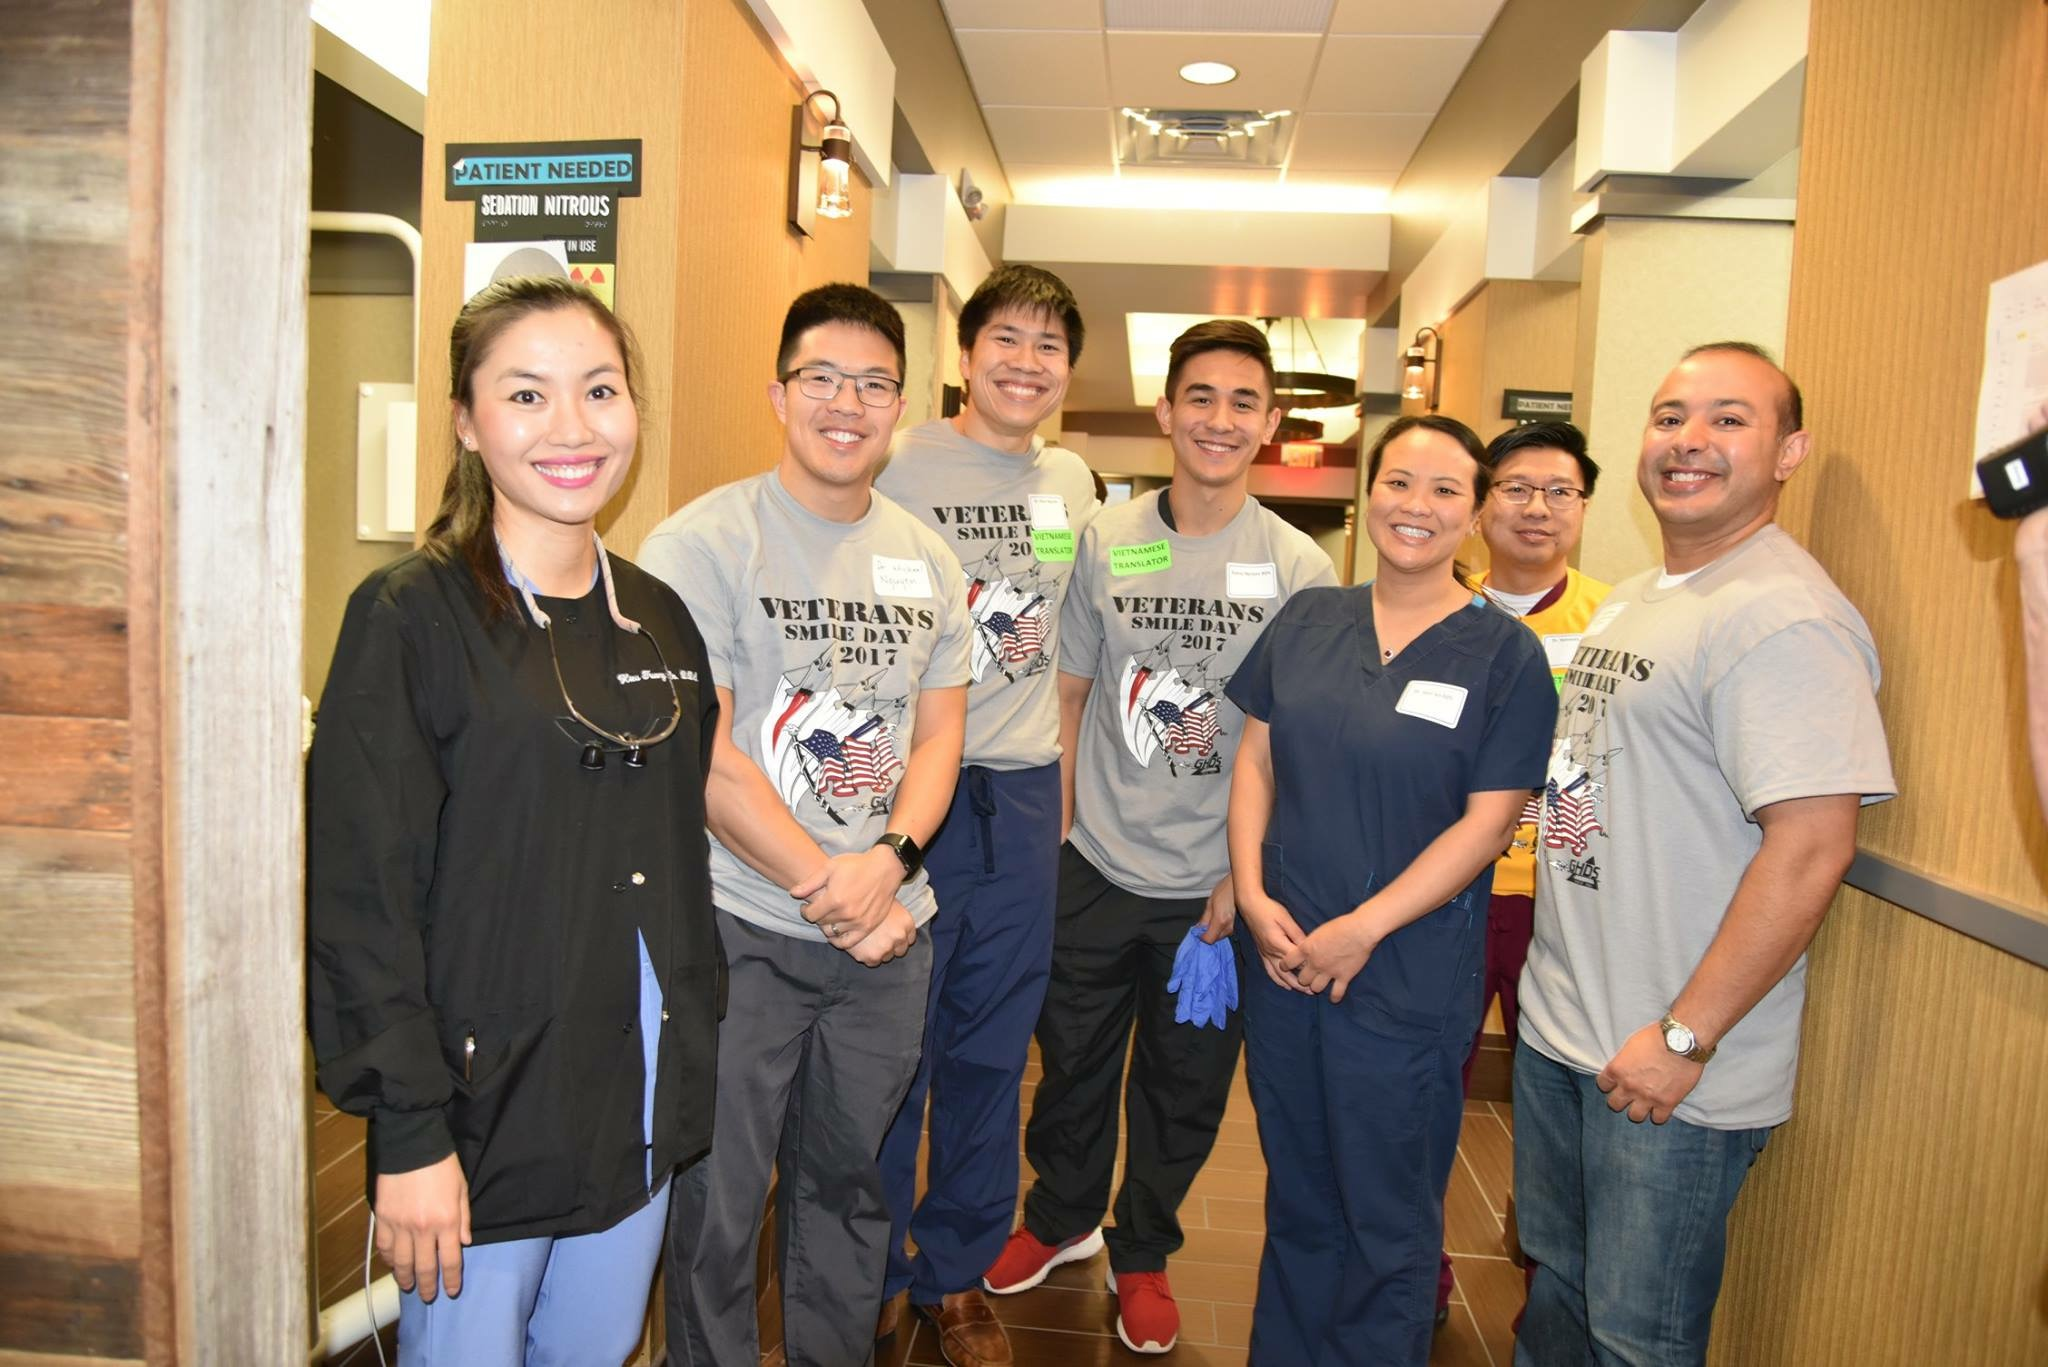 Dr. Do with the Veterans Smile Day Crew getting ready to treat patients.